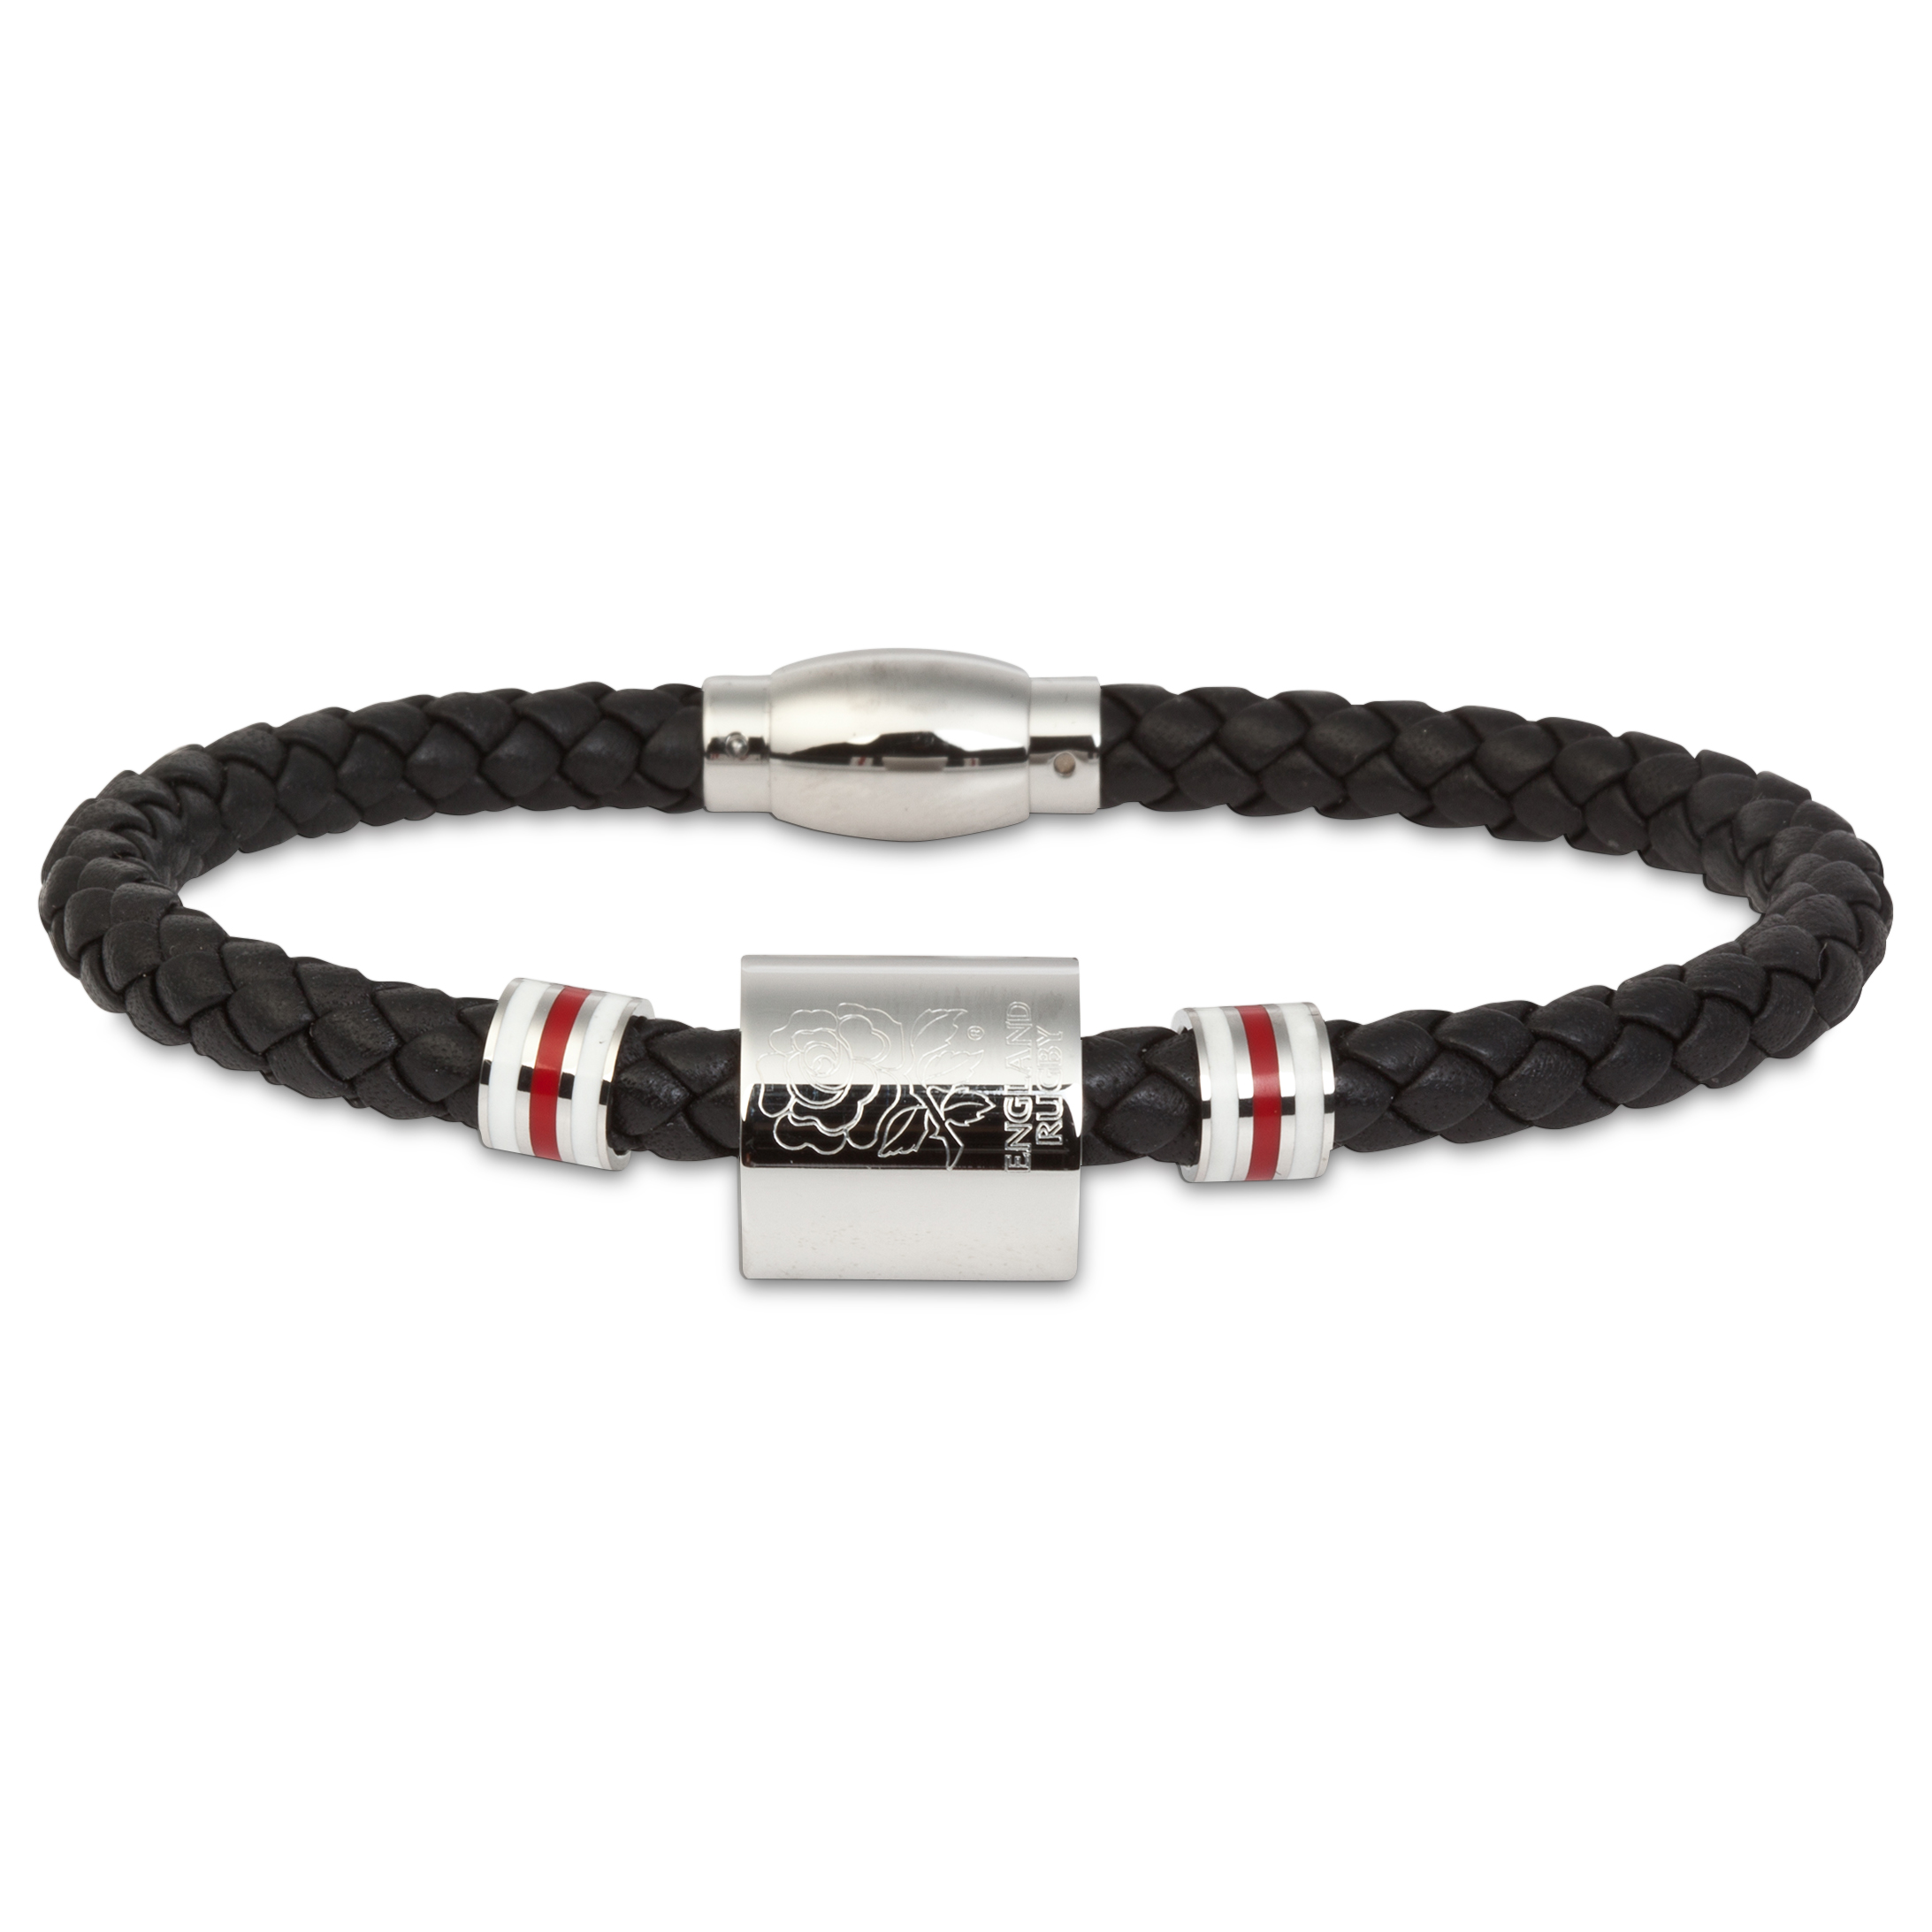 England Plaited Leather Bracelet